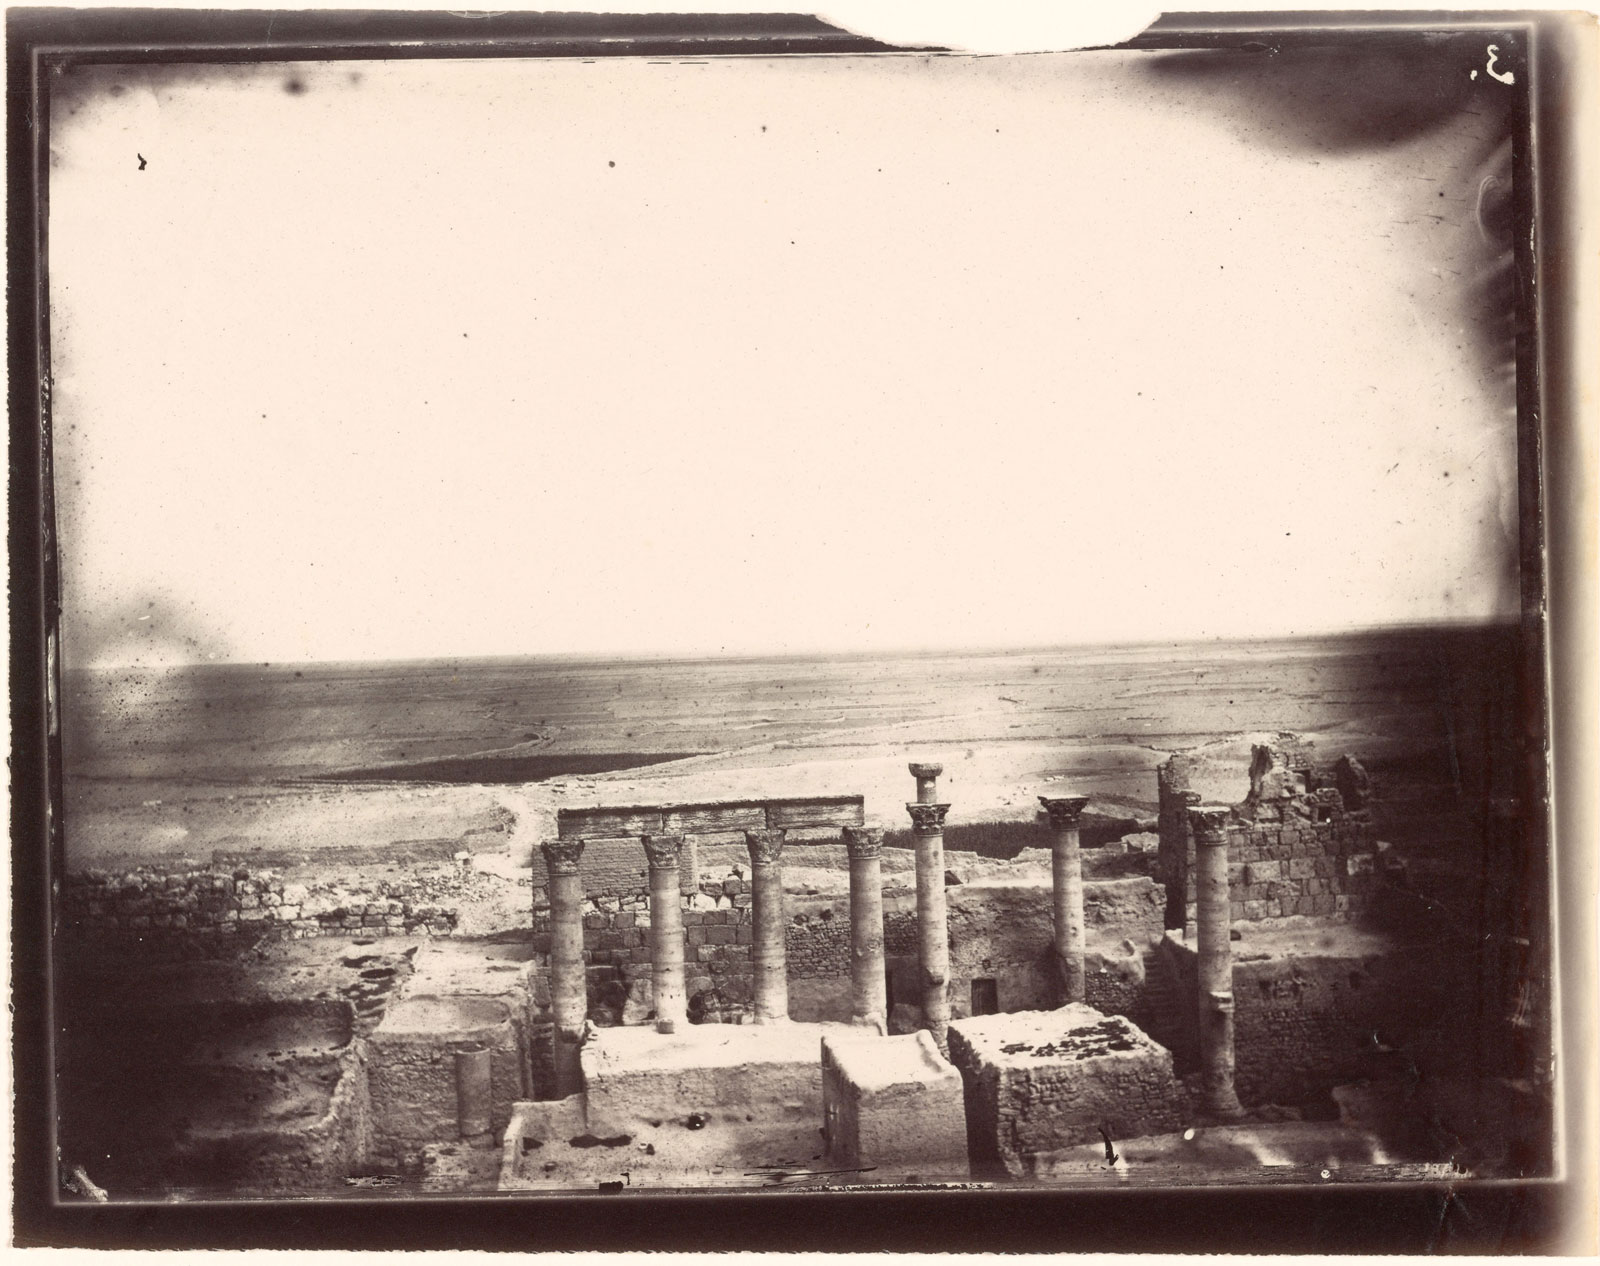 Columns, eastern part of the courtyard, Temple of Bel, Palmyra, photographed by Louis Vines, 1864